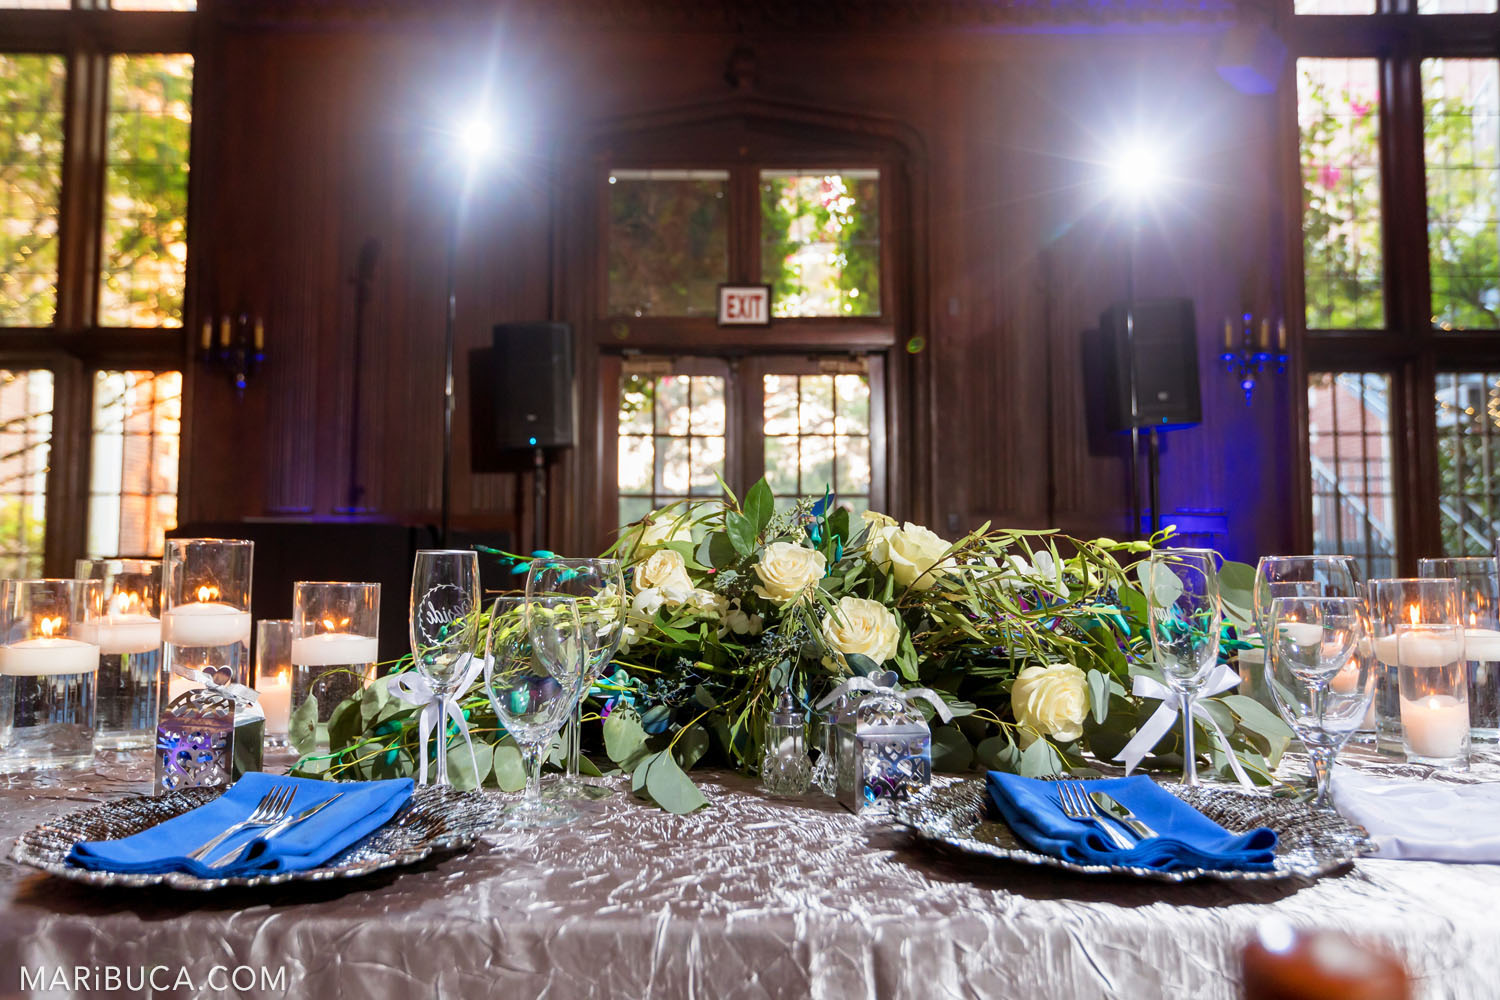 Wedding decoration: newlyweds coupe table with big decoration fresh white roses bouquet, glasses, lit candles in the glasses with water and lights as background in the Great Hall, Kohl Mansion, Burlingame